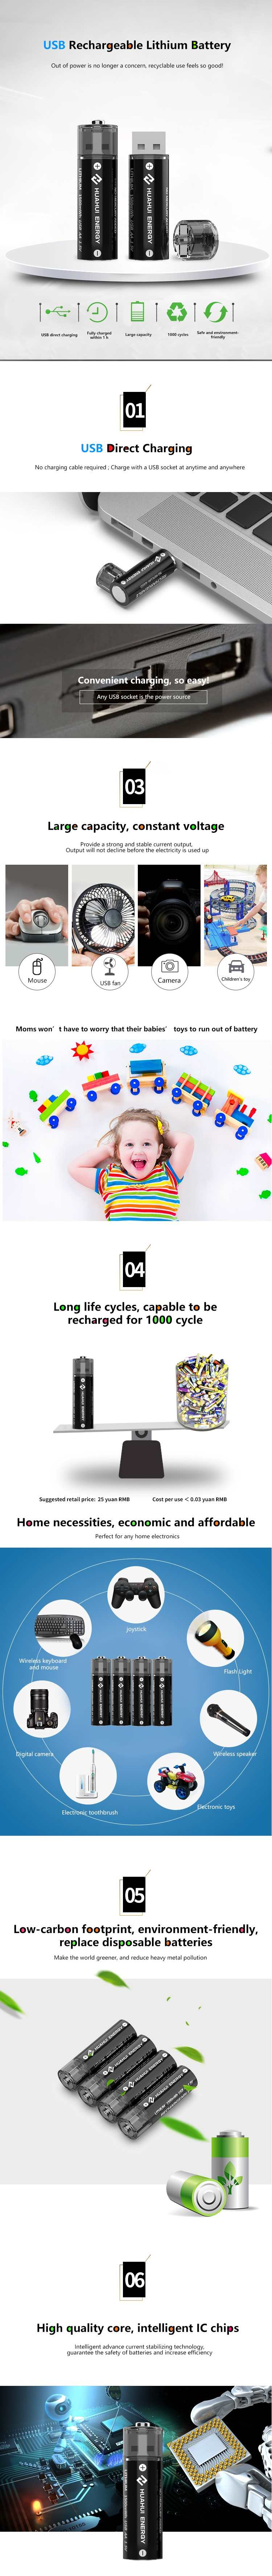 A large marketing image providing additional information about the product HUAHUI Four AA USB Rechargeable Lithium 1500mWh Battery Pack - Additional alt info not provided